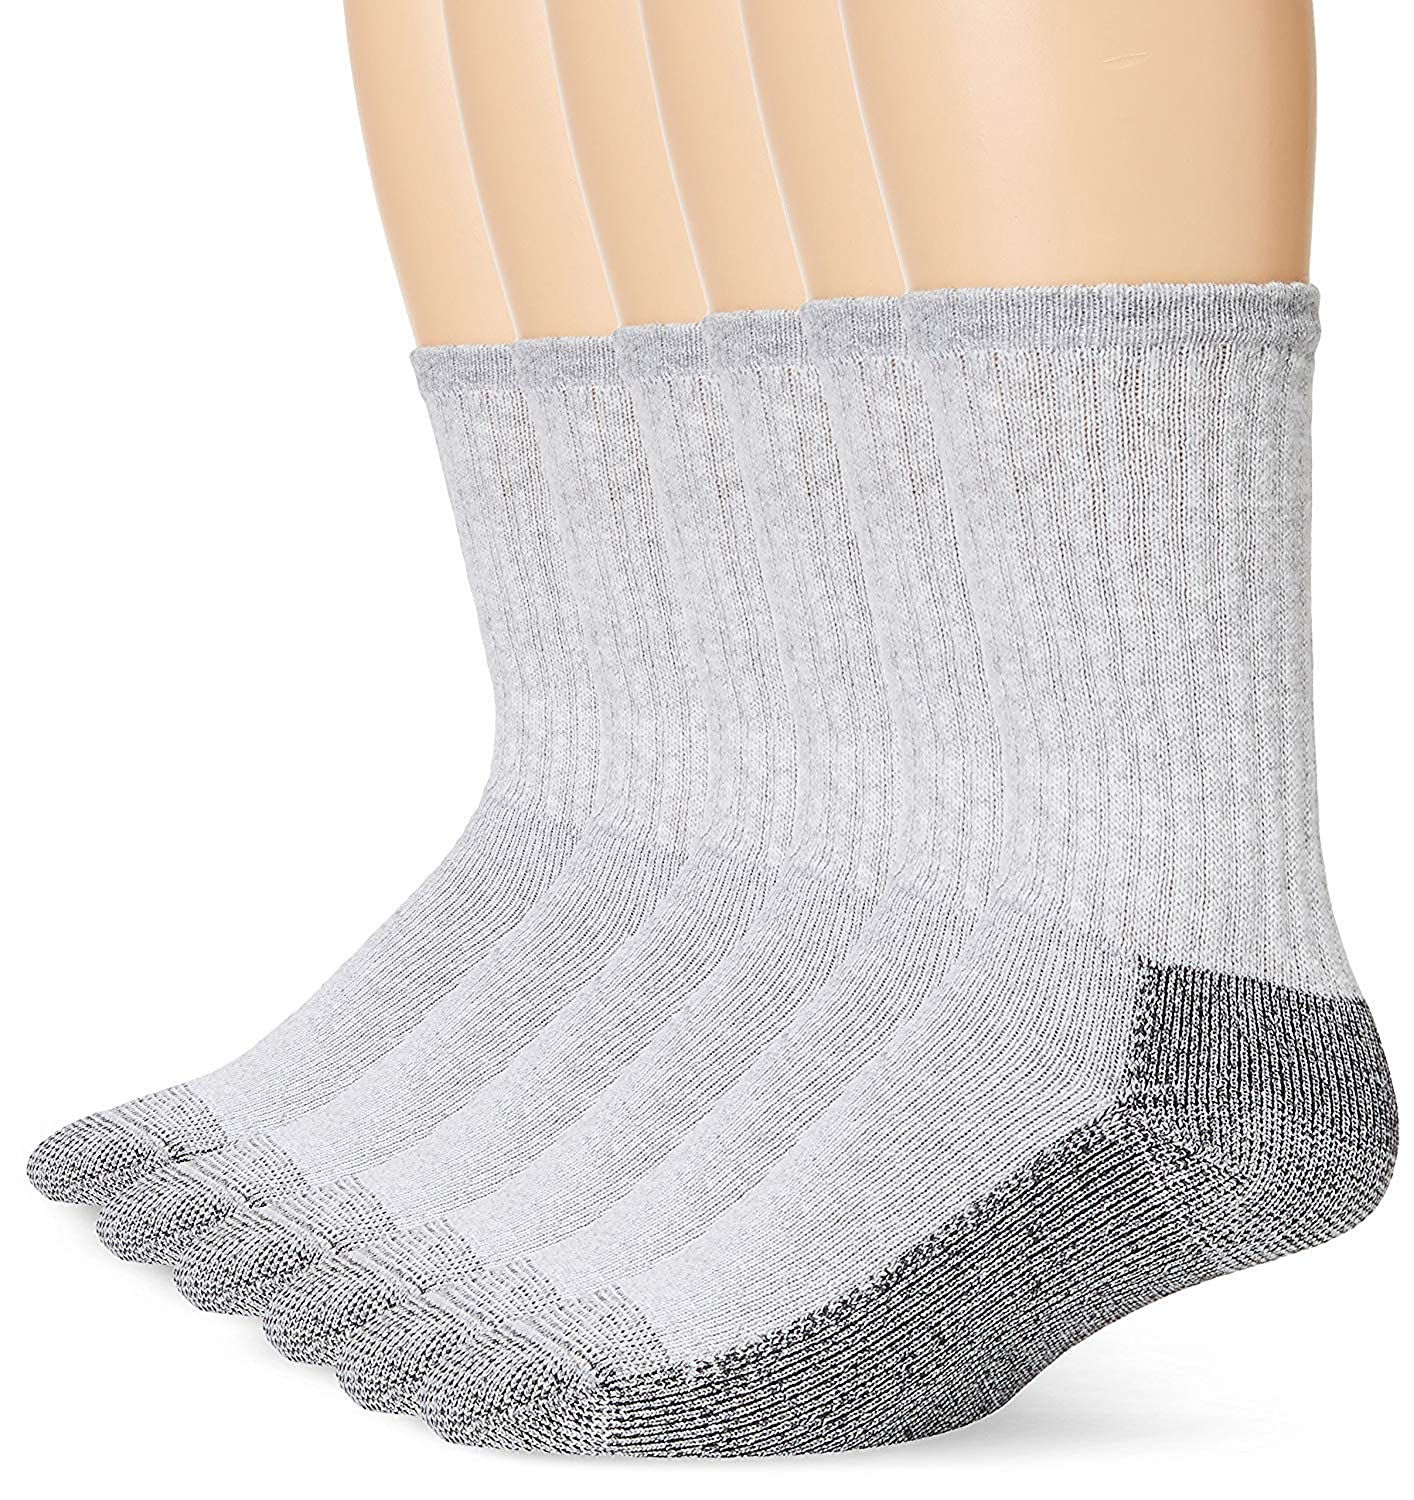 Fruit Of The Loom Mens 6 Pack Heavy Duty Reinforced Crew Socks at Amazon Mens Clothing store: